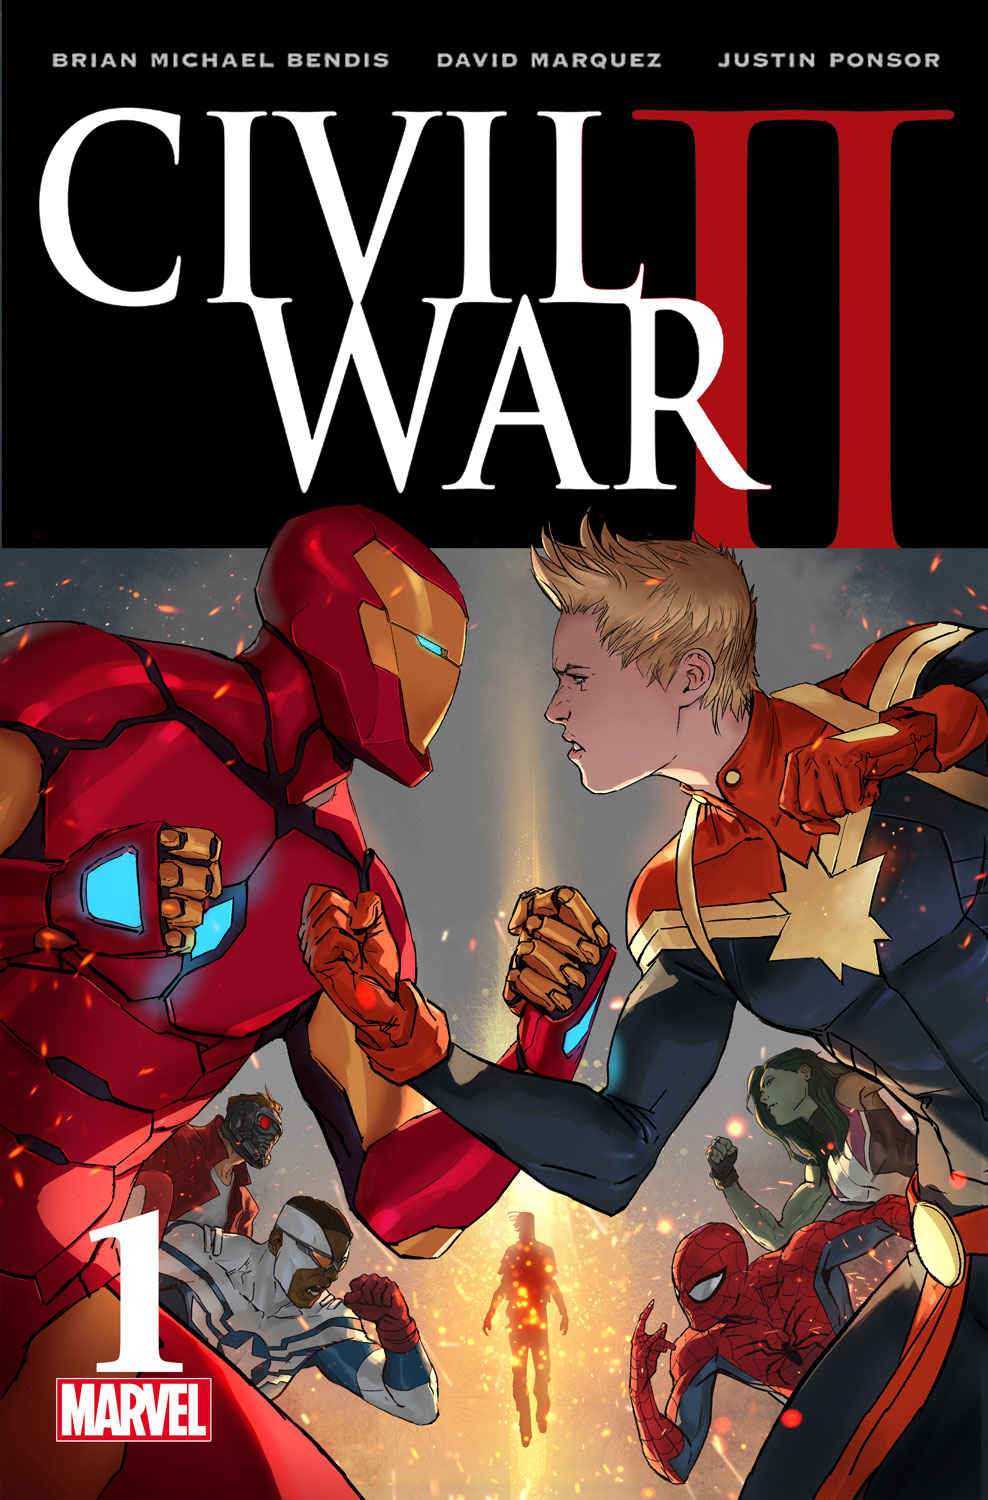 CIVIL WAR II Launch Parties Bring the Battle to Your Local Comic Shop!